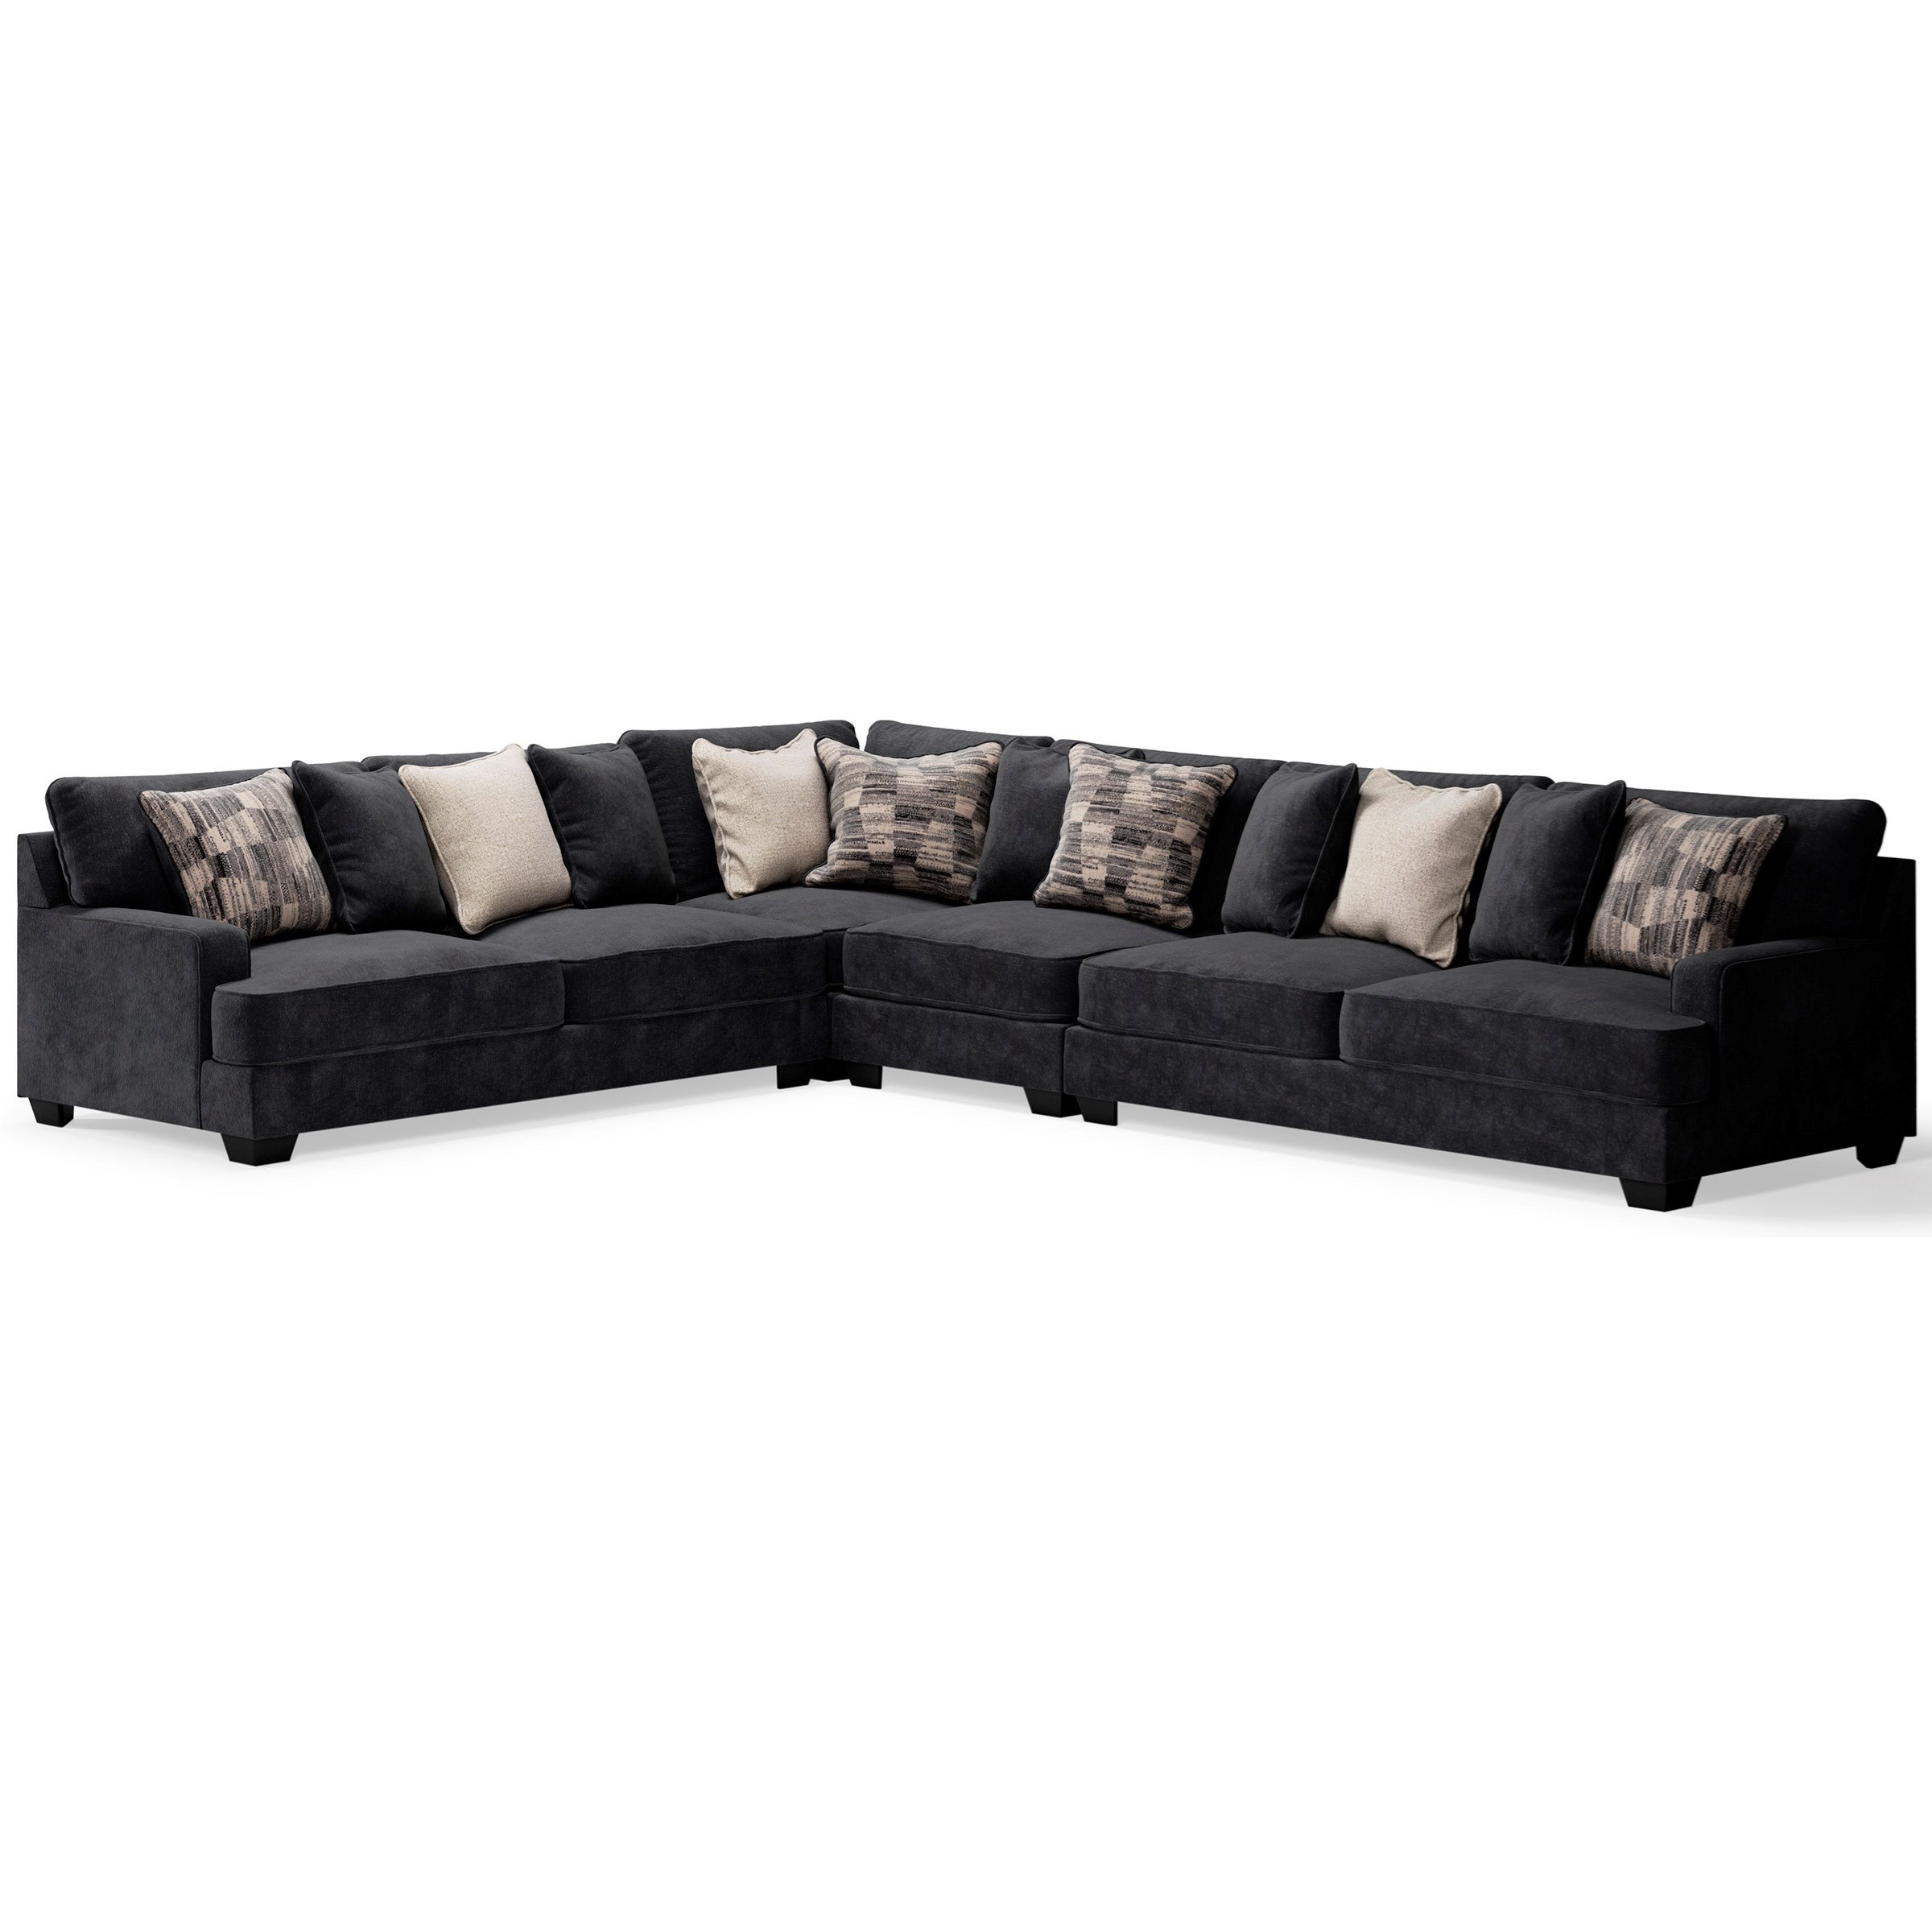 Lavernett 4-Piece Sectional by Ashley (Signature Design) at Johnny Janosik